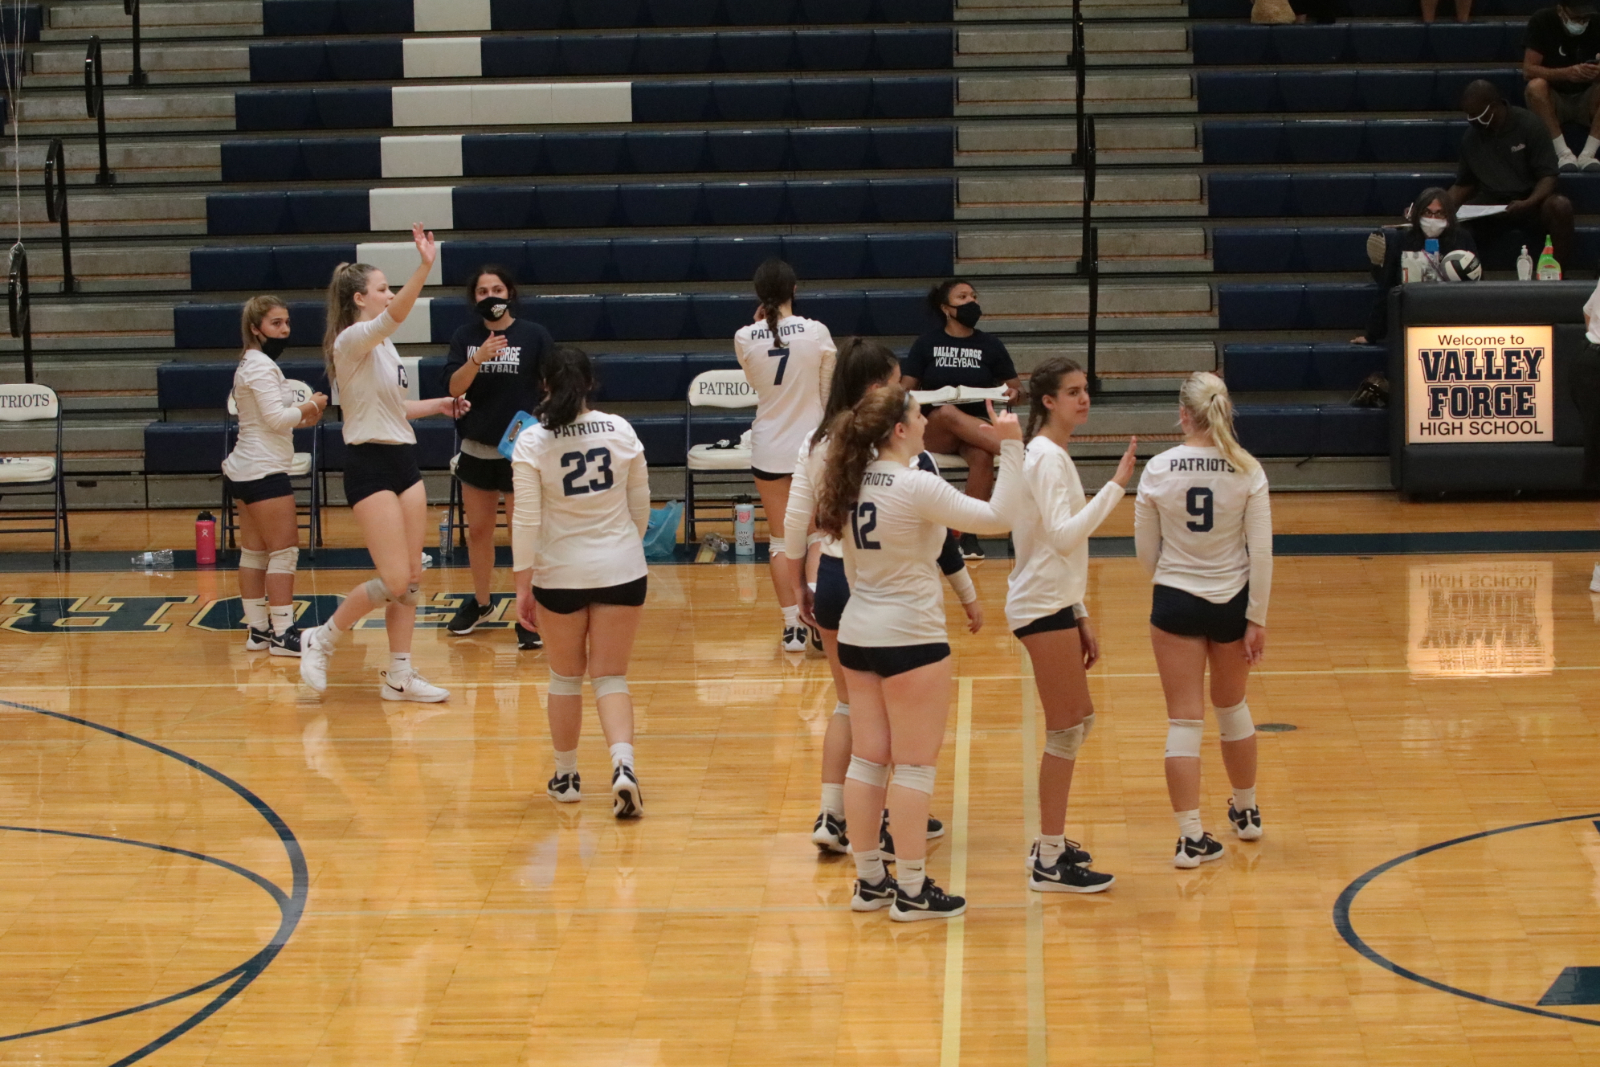 Volleyball Action Pics v Rocky River